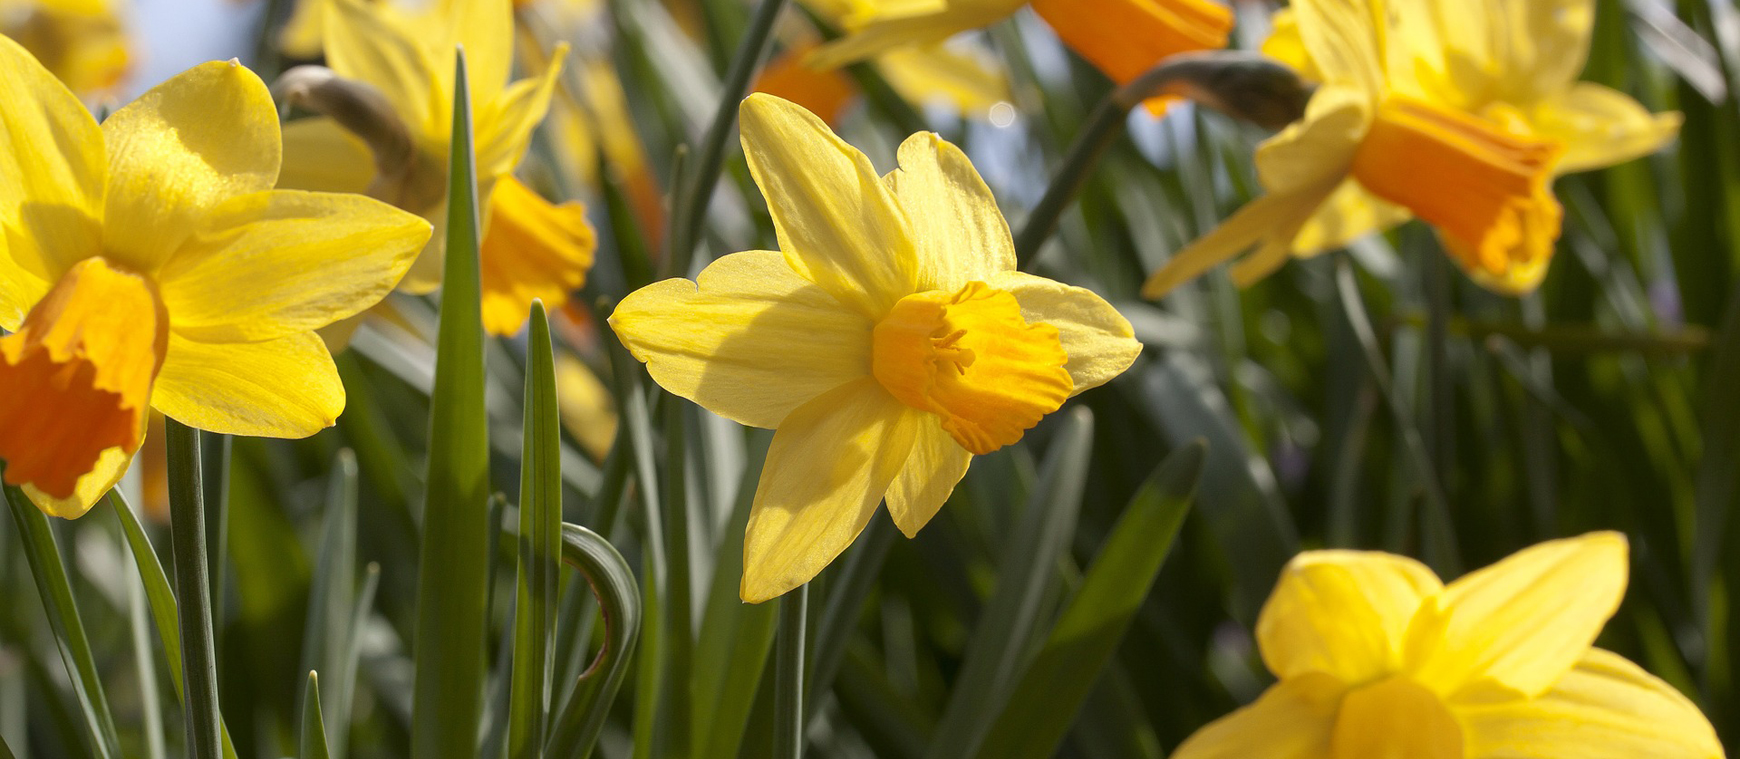 Order your Daffodils!